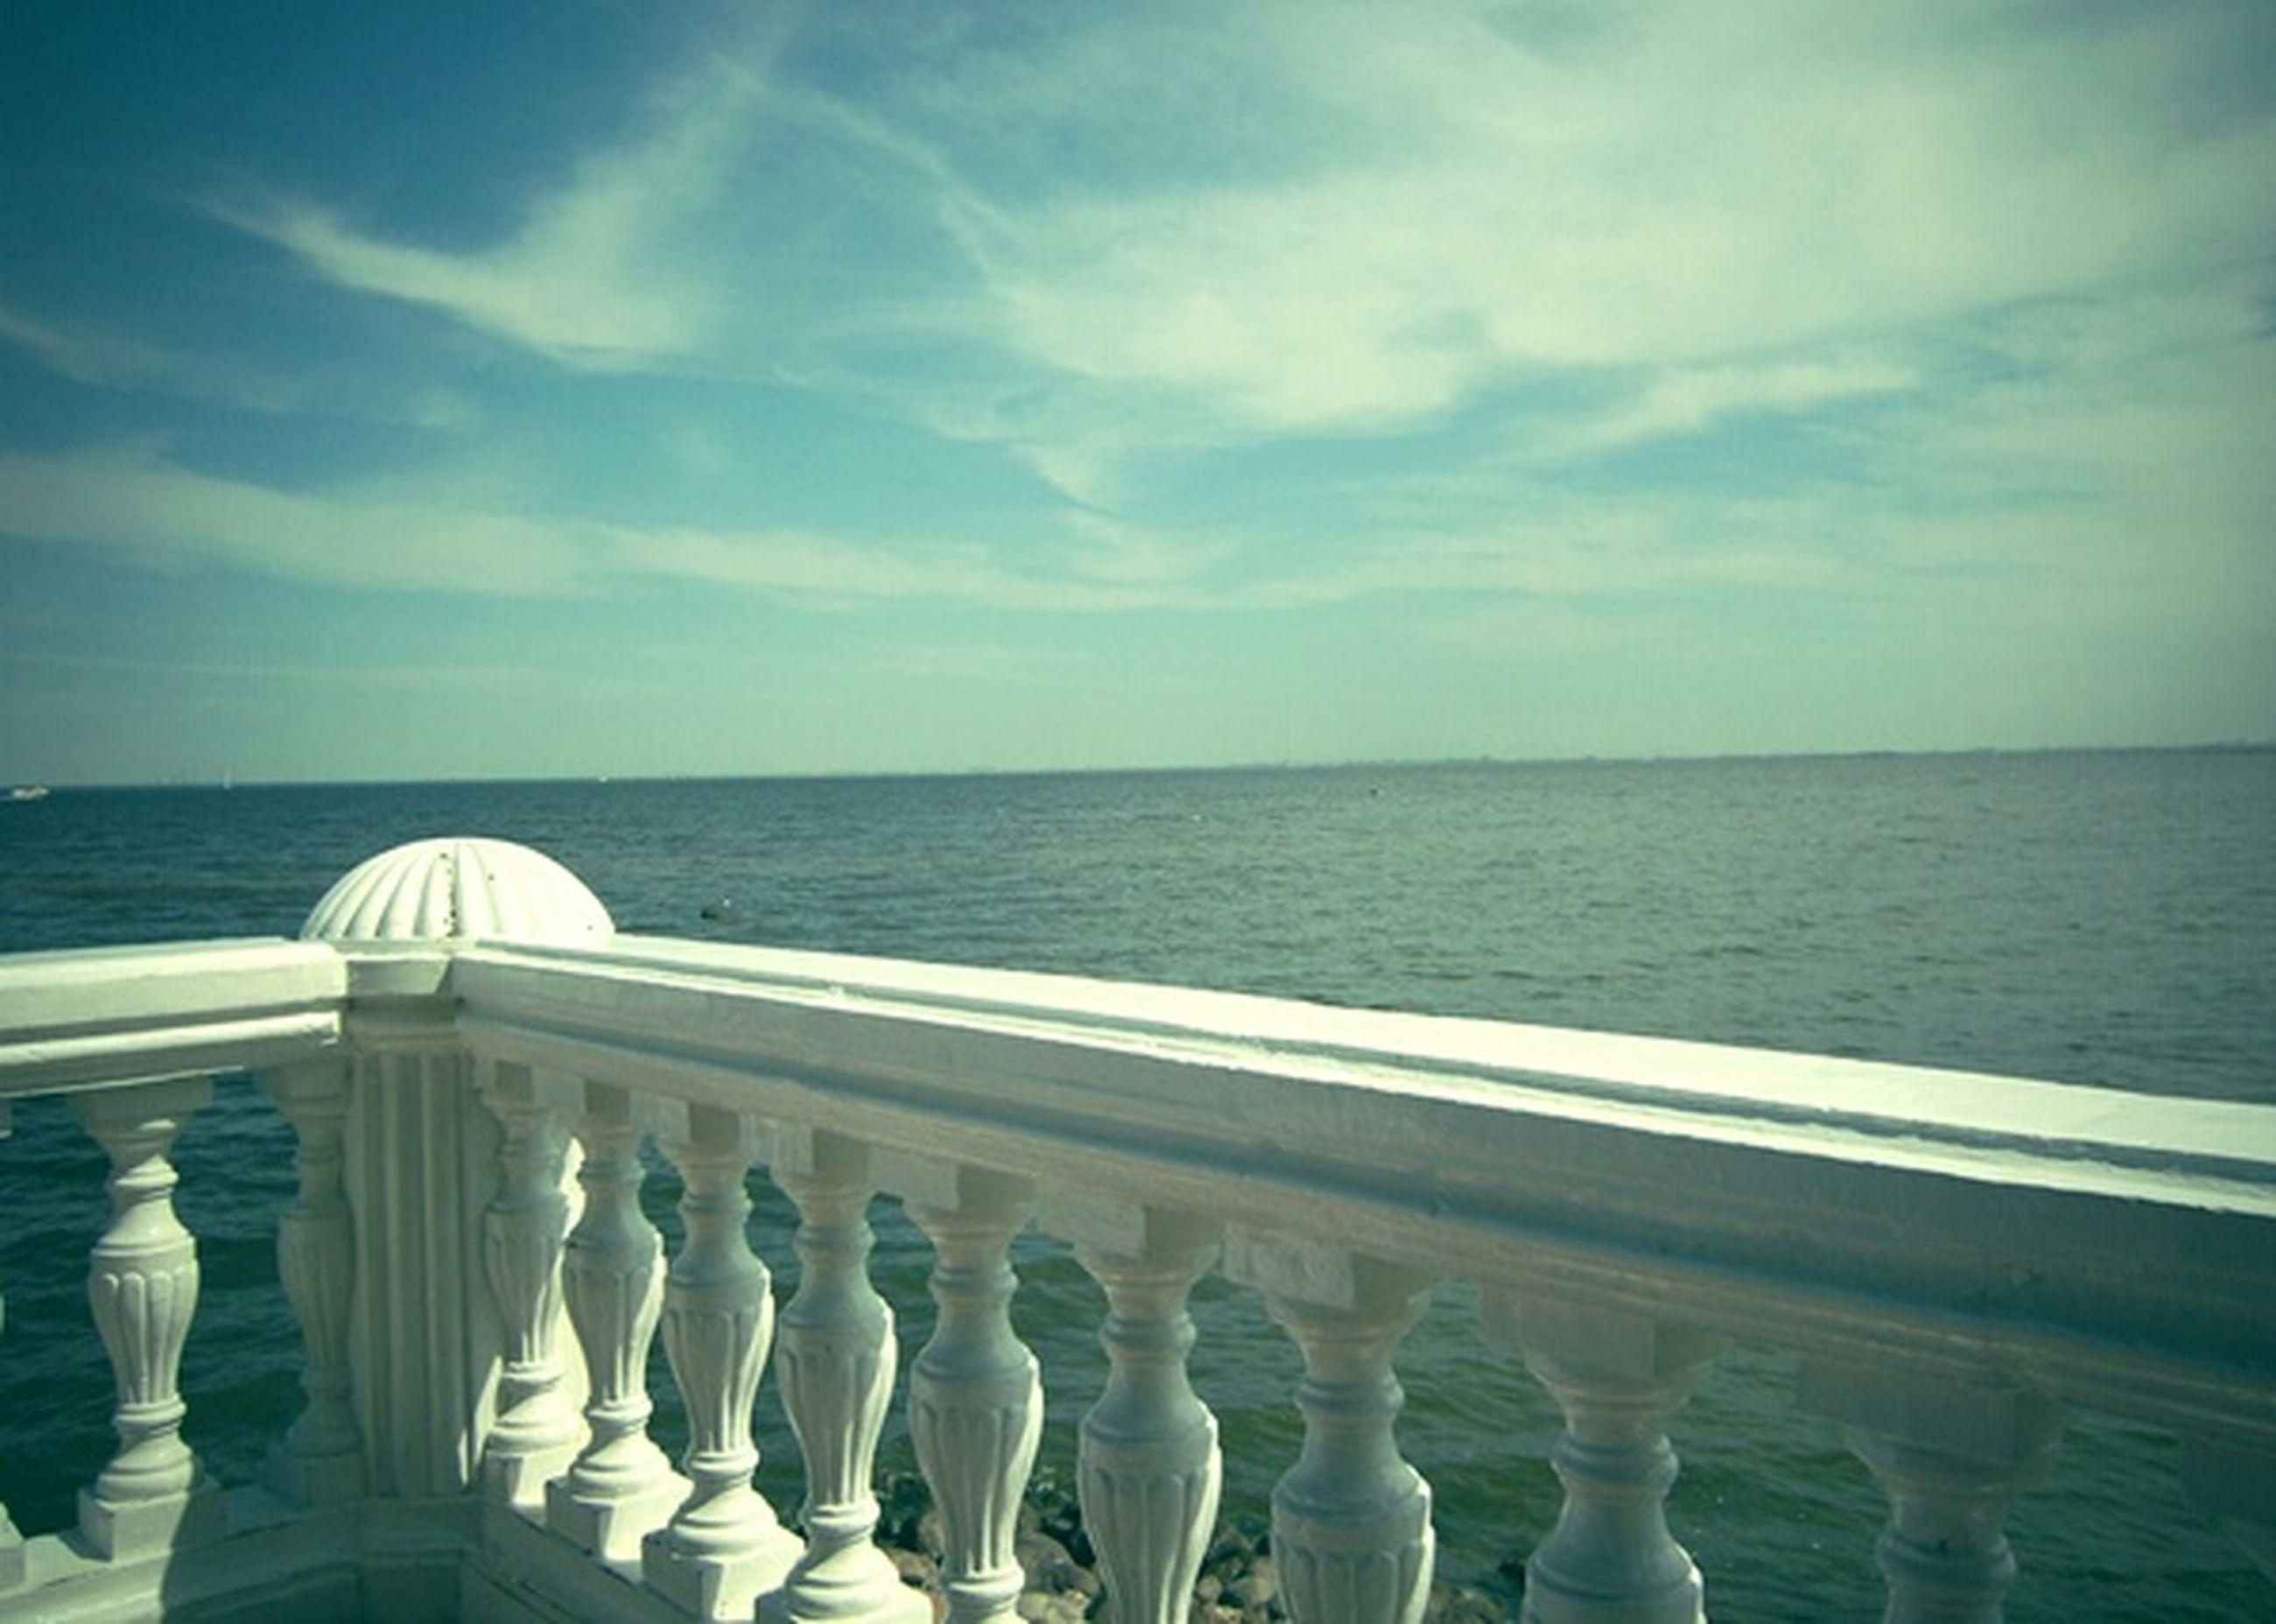 sea, horizon over water, water, sky, railing, scenics, tranquil scene, beauty in nature, tranquility, cloud - sky, nature, blue, cloud, idyllic, beach, day, seascape, pier, no people, outdoors